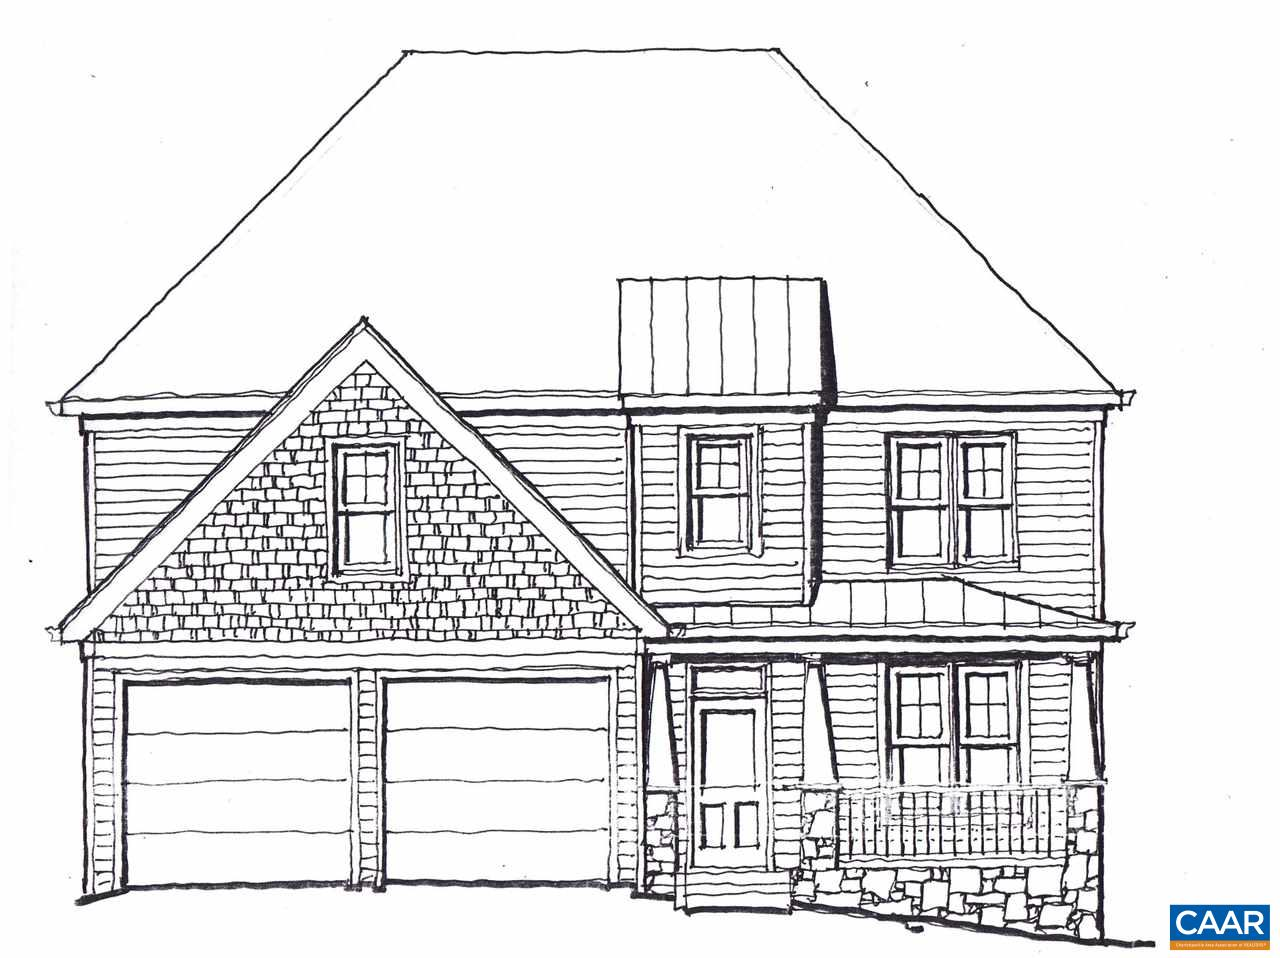 home for sale , MLS #581447, lot 35 Jonna St